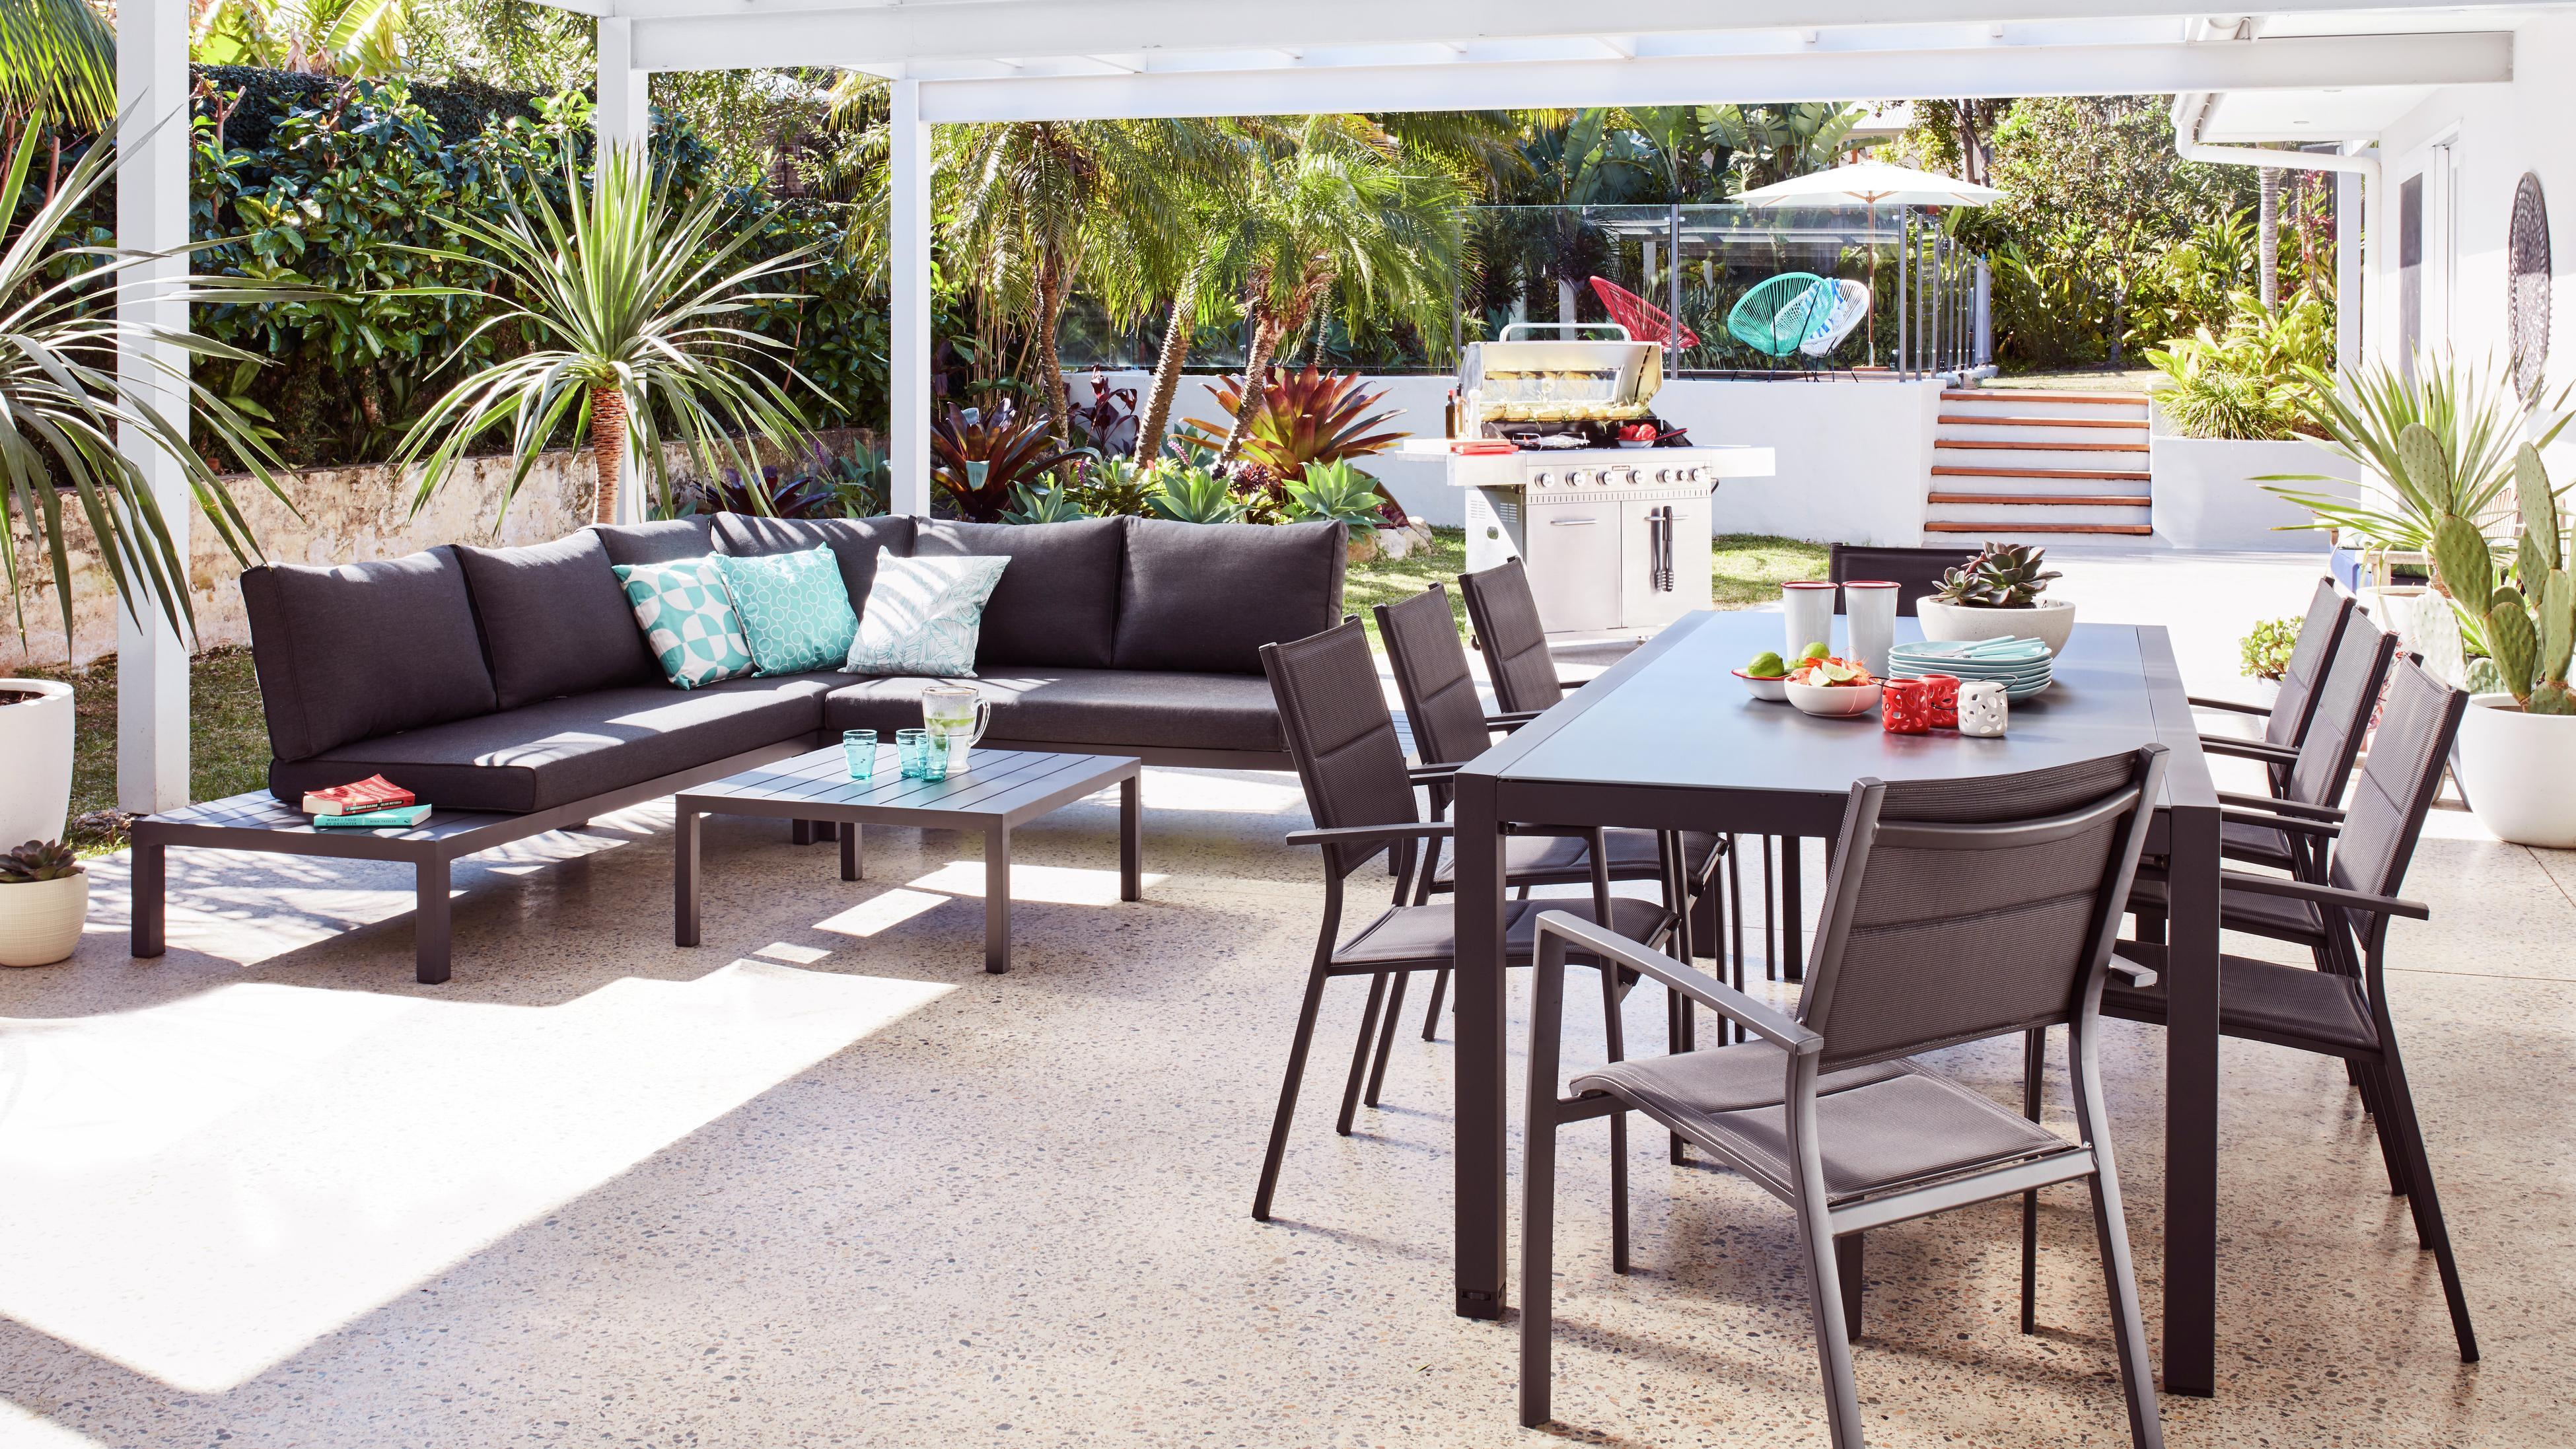 Covered outdoor dining area with dining table and outdoor lounge